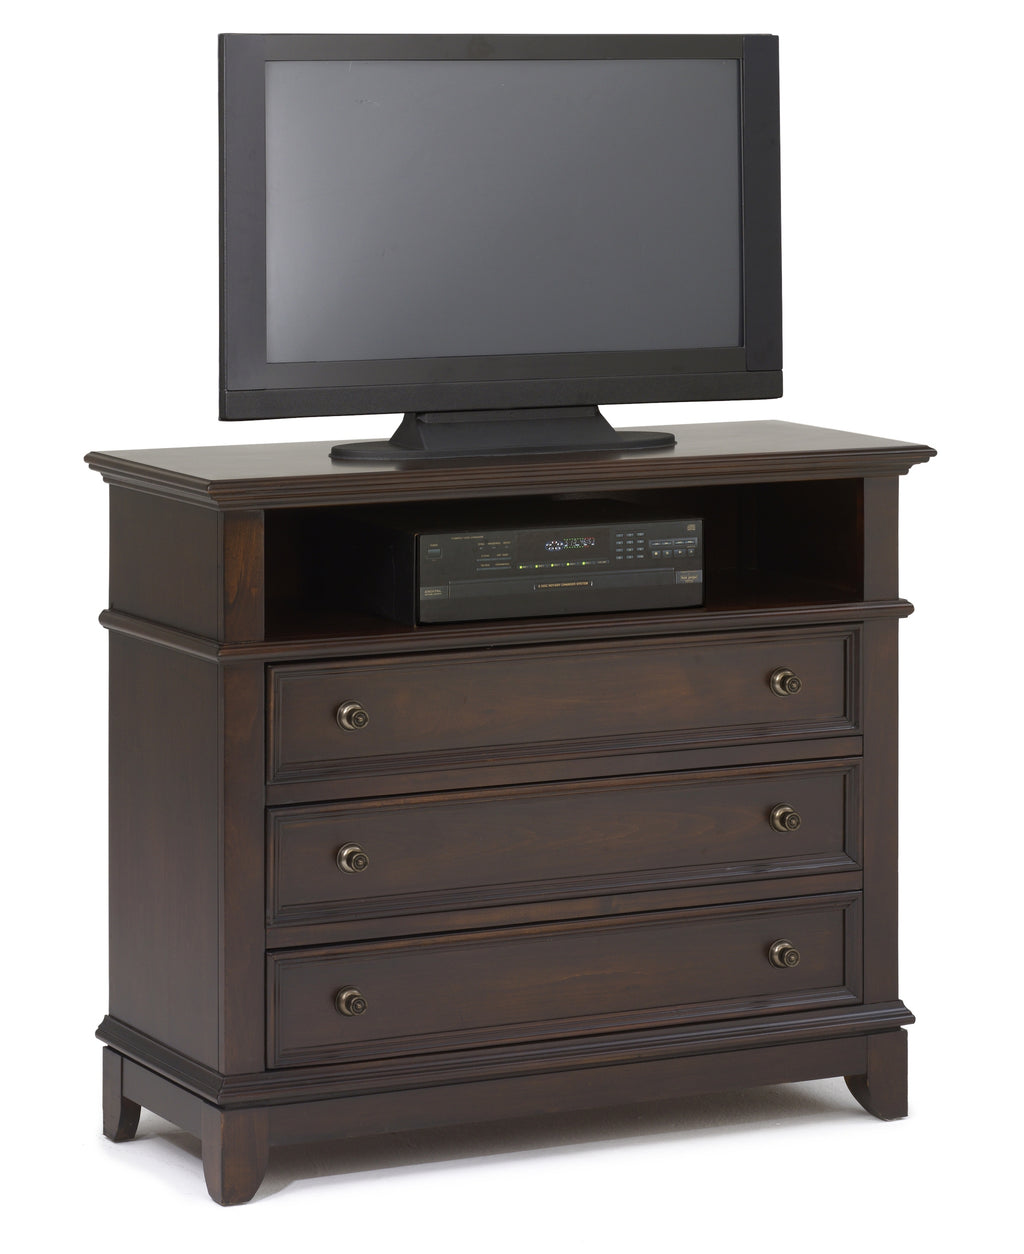 New Classic Kensington Media Chest in Burnished Cherry